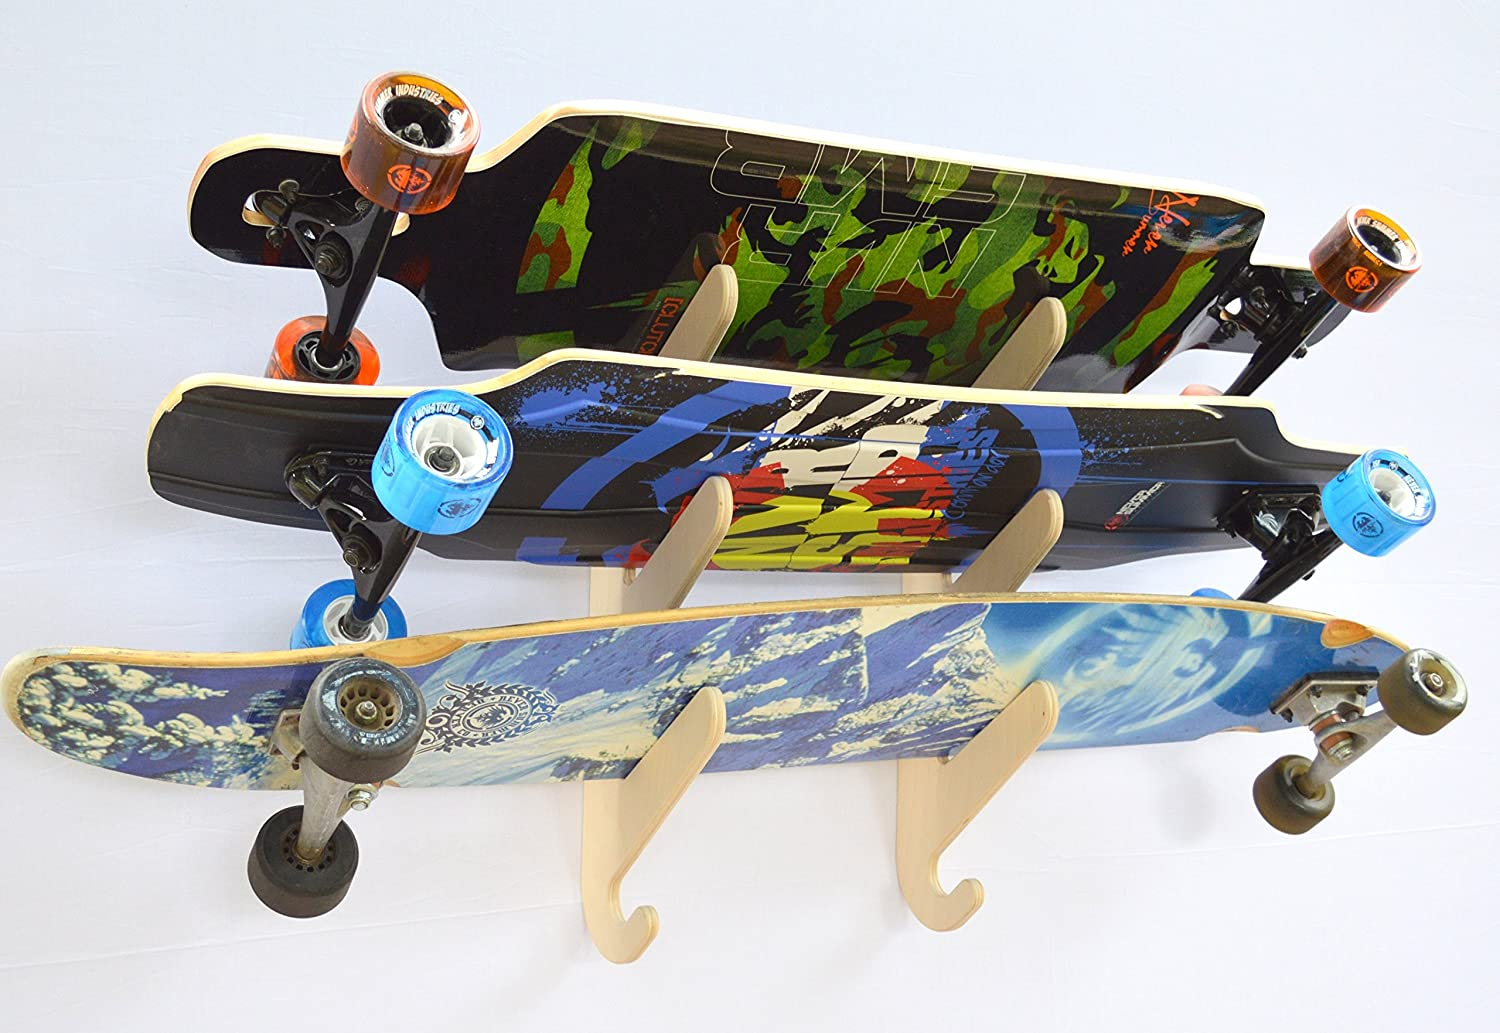 c7412b5c Amazon.com : Longboard Skateboard Hanging Wall Rack -- Holds 3 Boards :  Sports & Outdoors